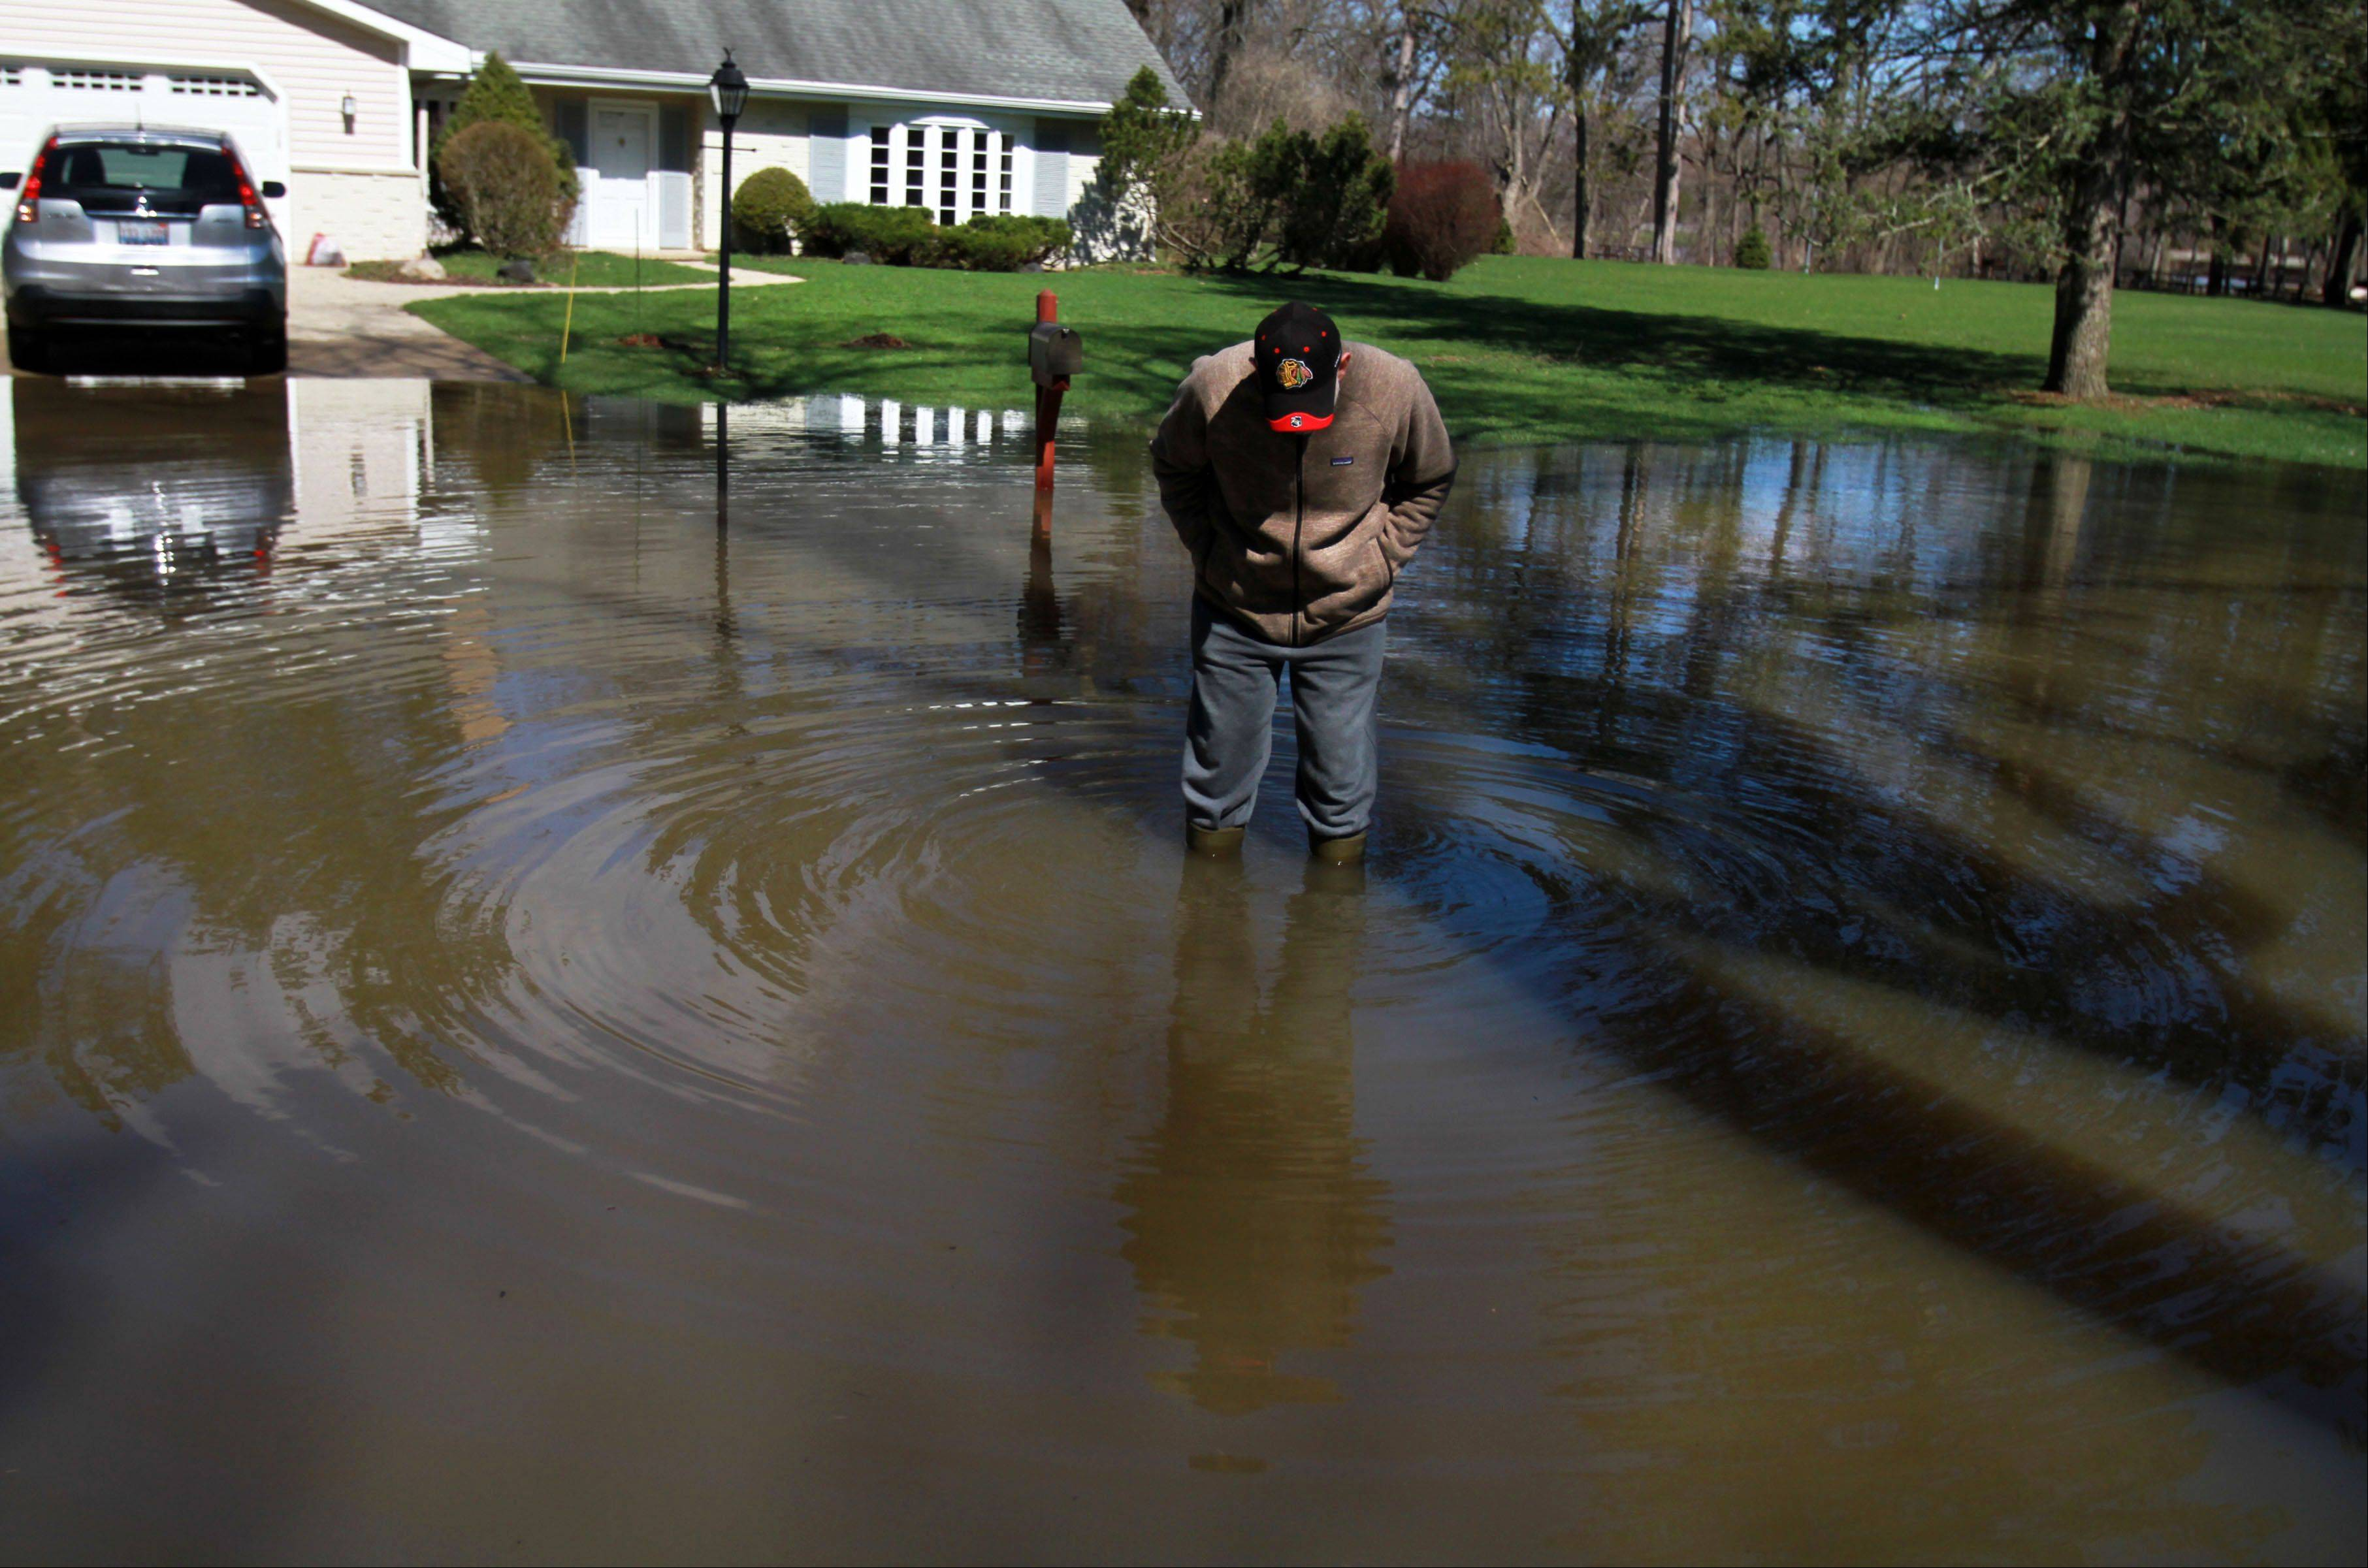 George LeClaire/gleclaire@dailyherald.comRich Sanders checks the level of the water on his boots and decides to walk back to his house on Lincolnshire Way in Lincolnshire. Sanders wanted to checking the water level at the end of the block but turning back on Saturday, April 20, 2013. Rich said his house did not get any water.